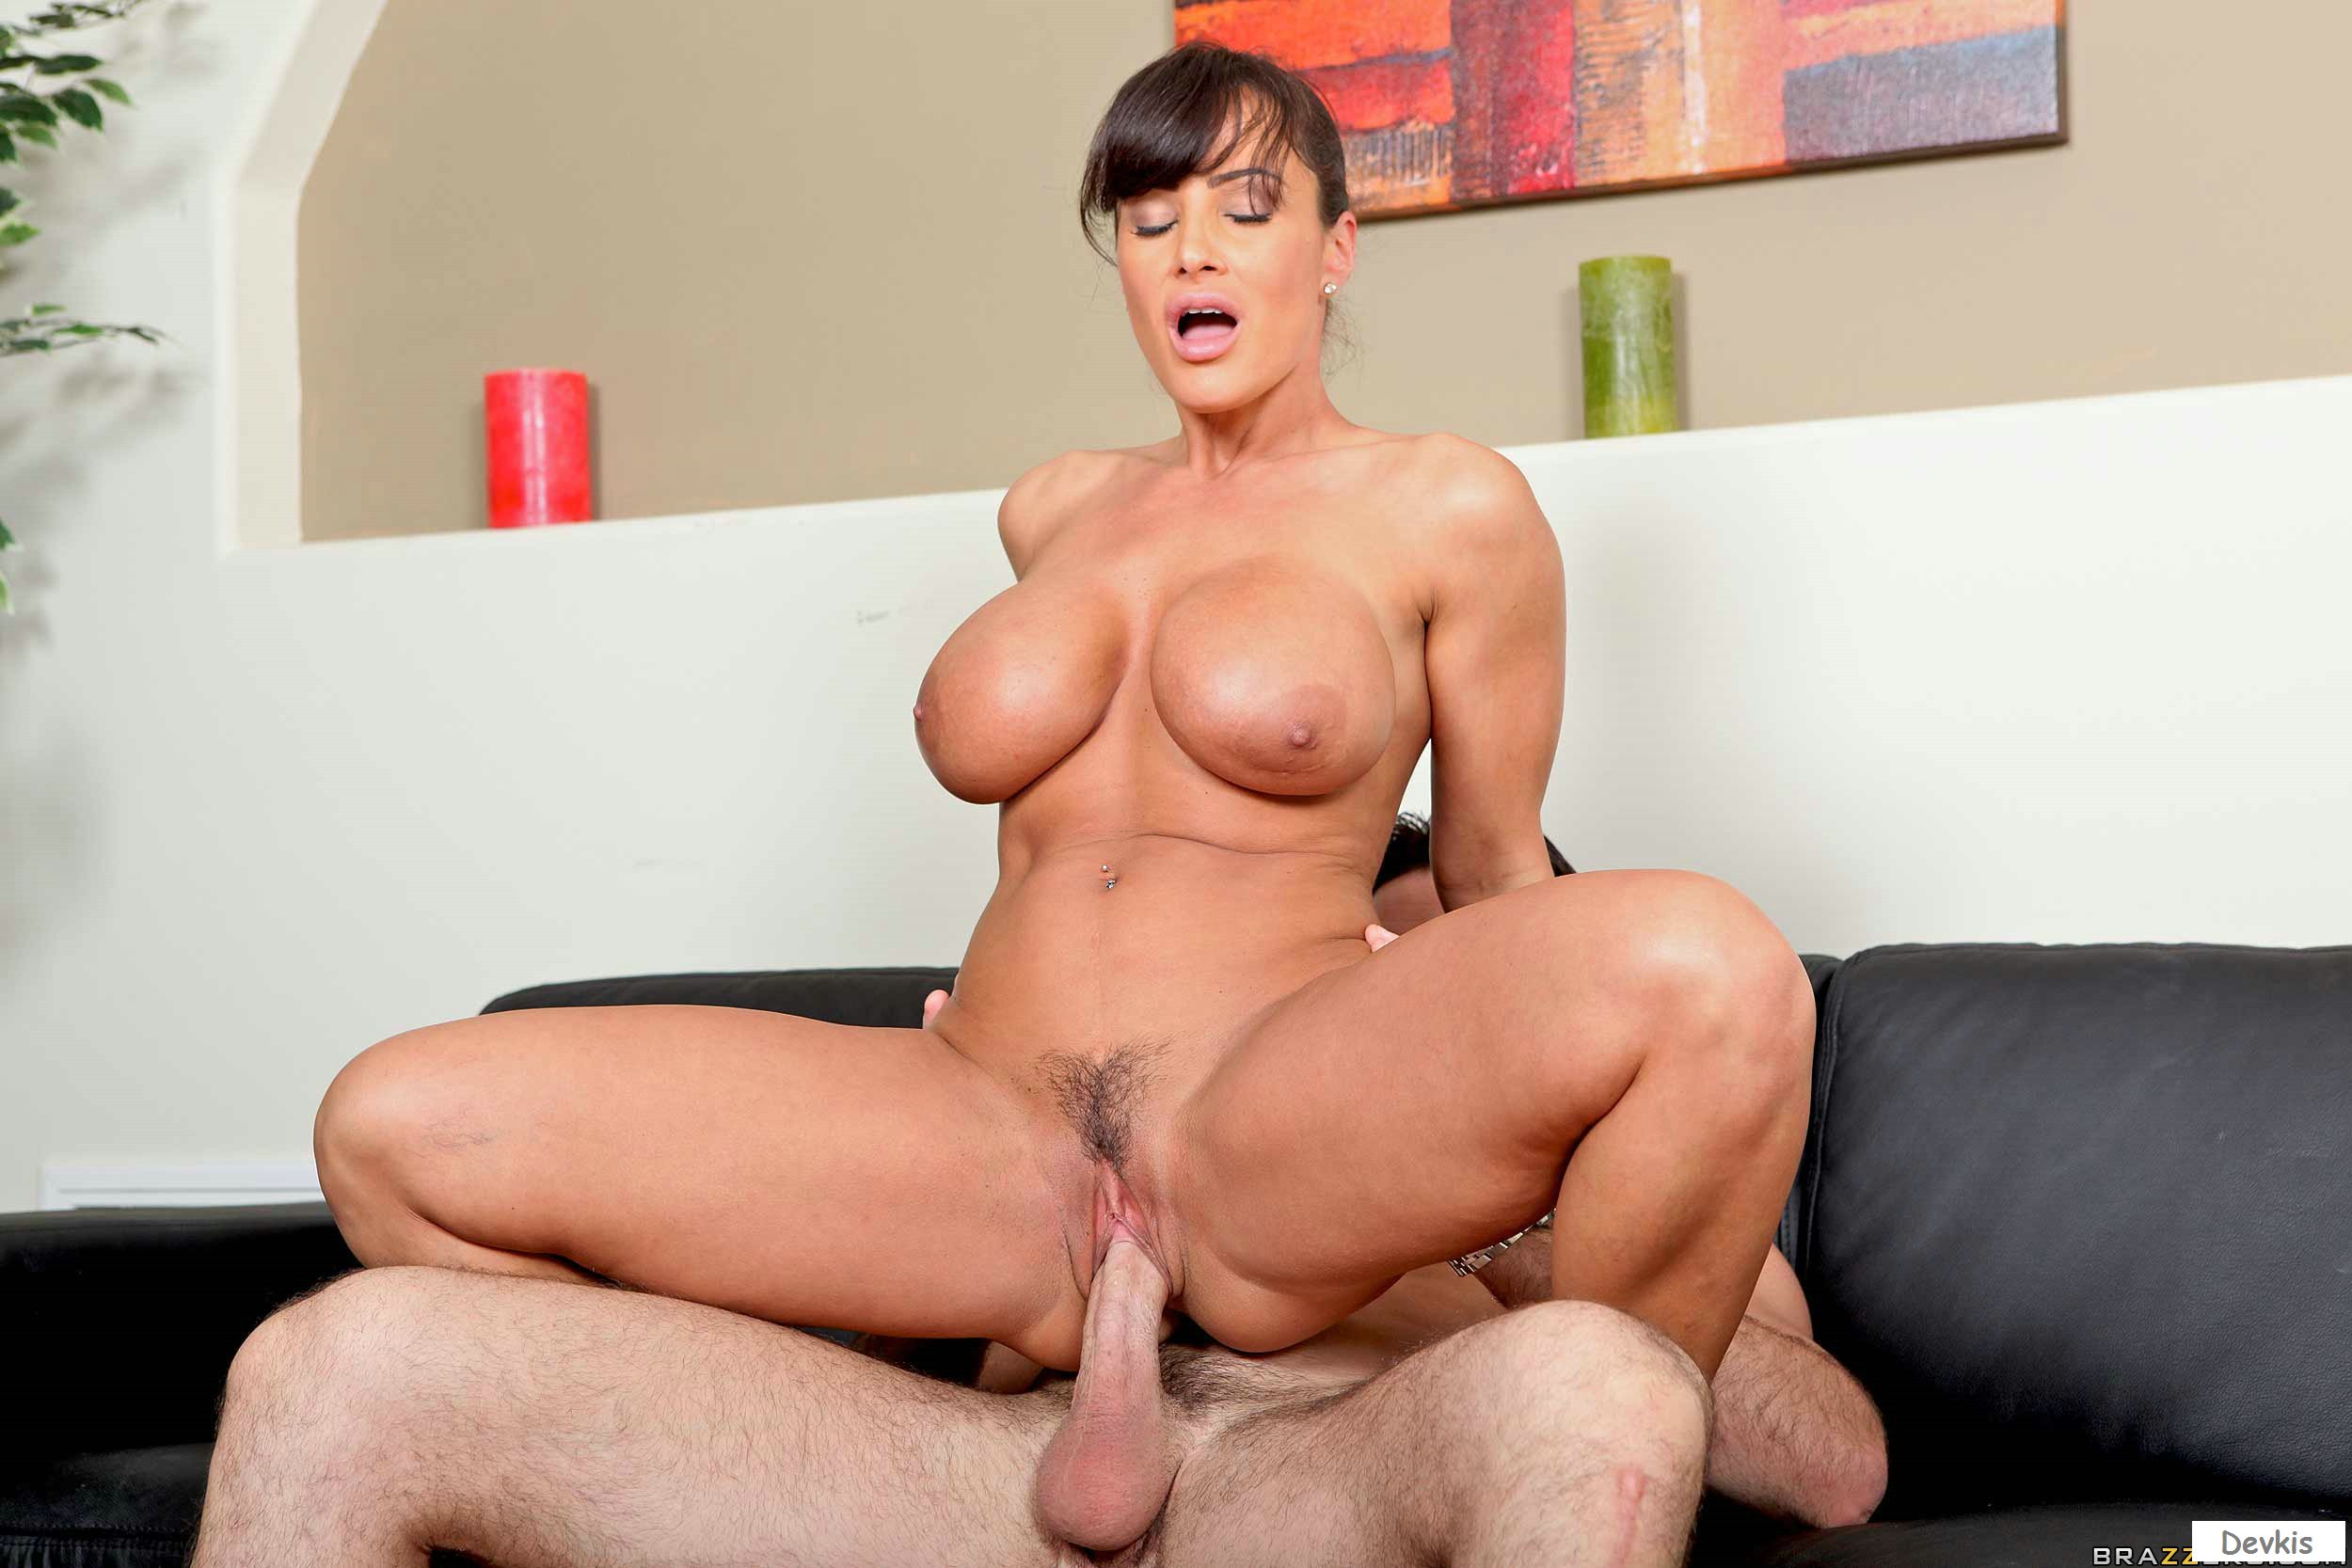 Interactive Sex With Lisa Ann Daftsex